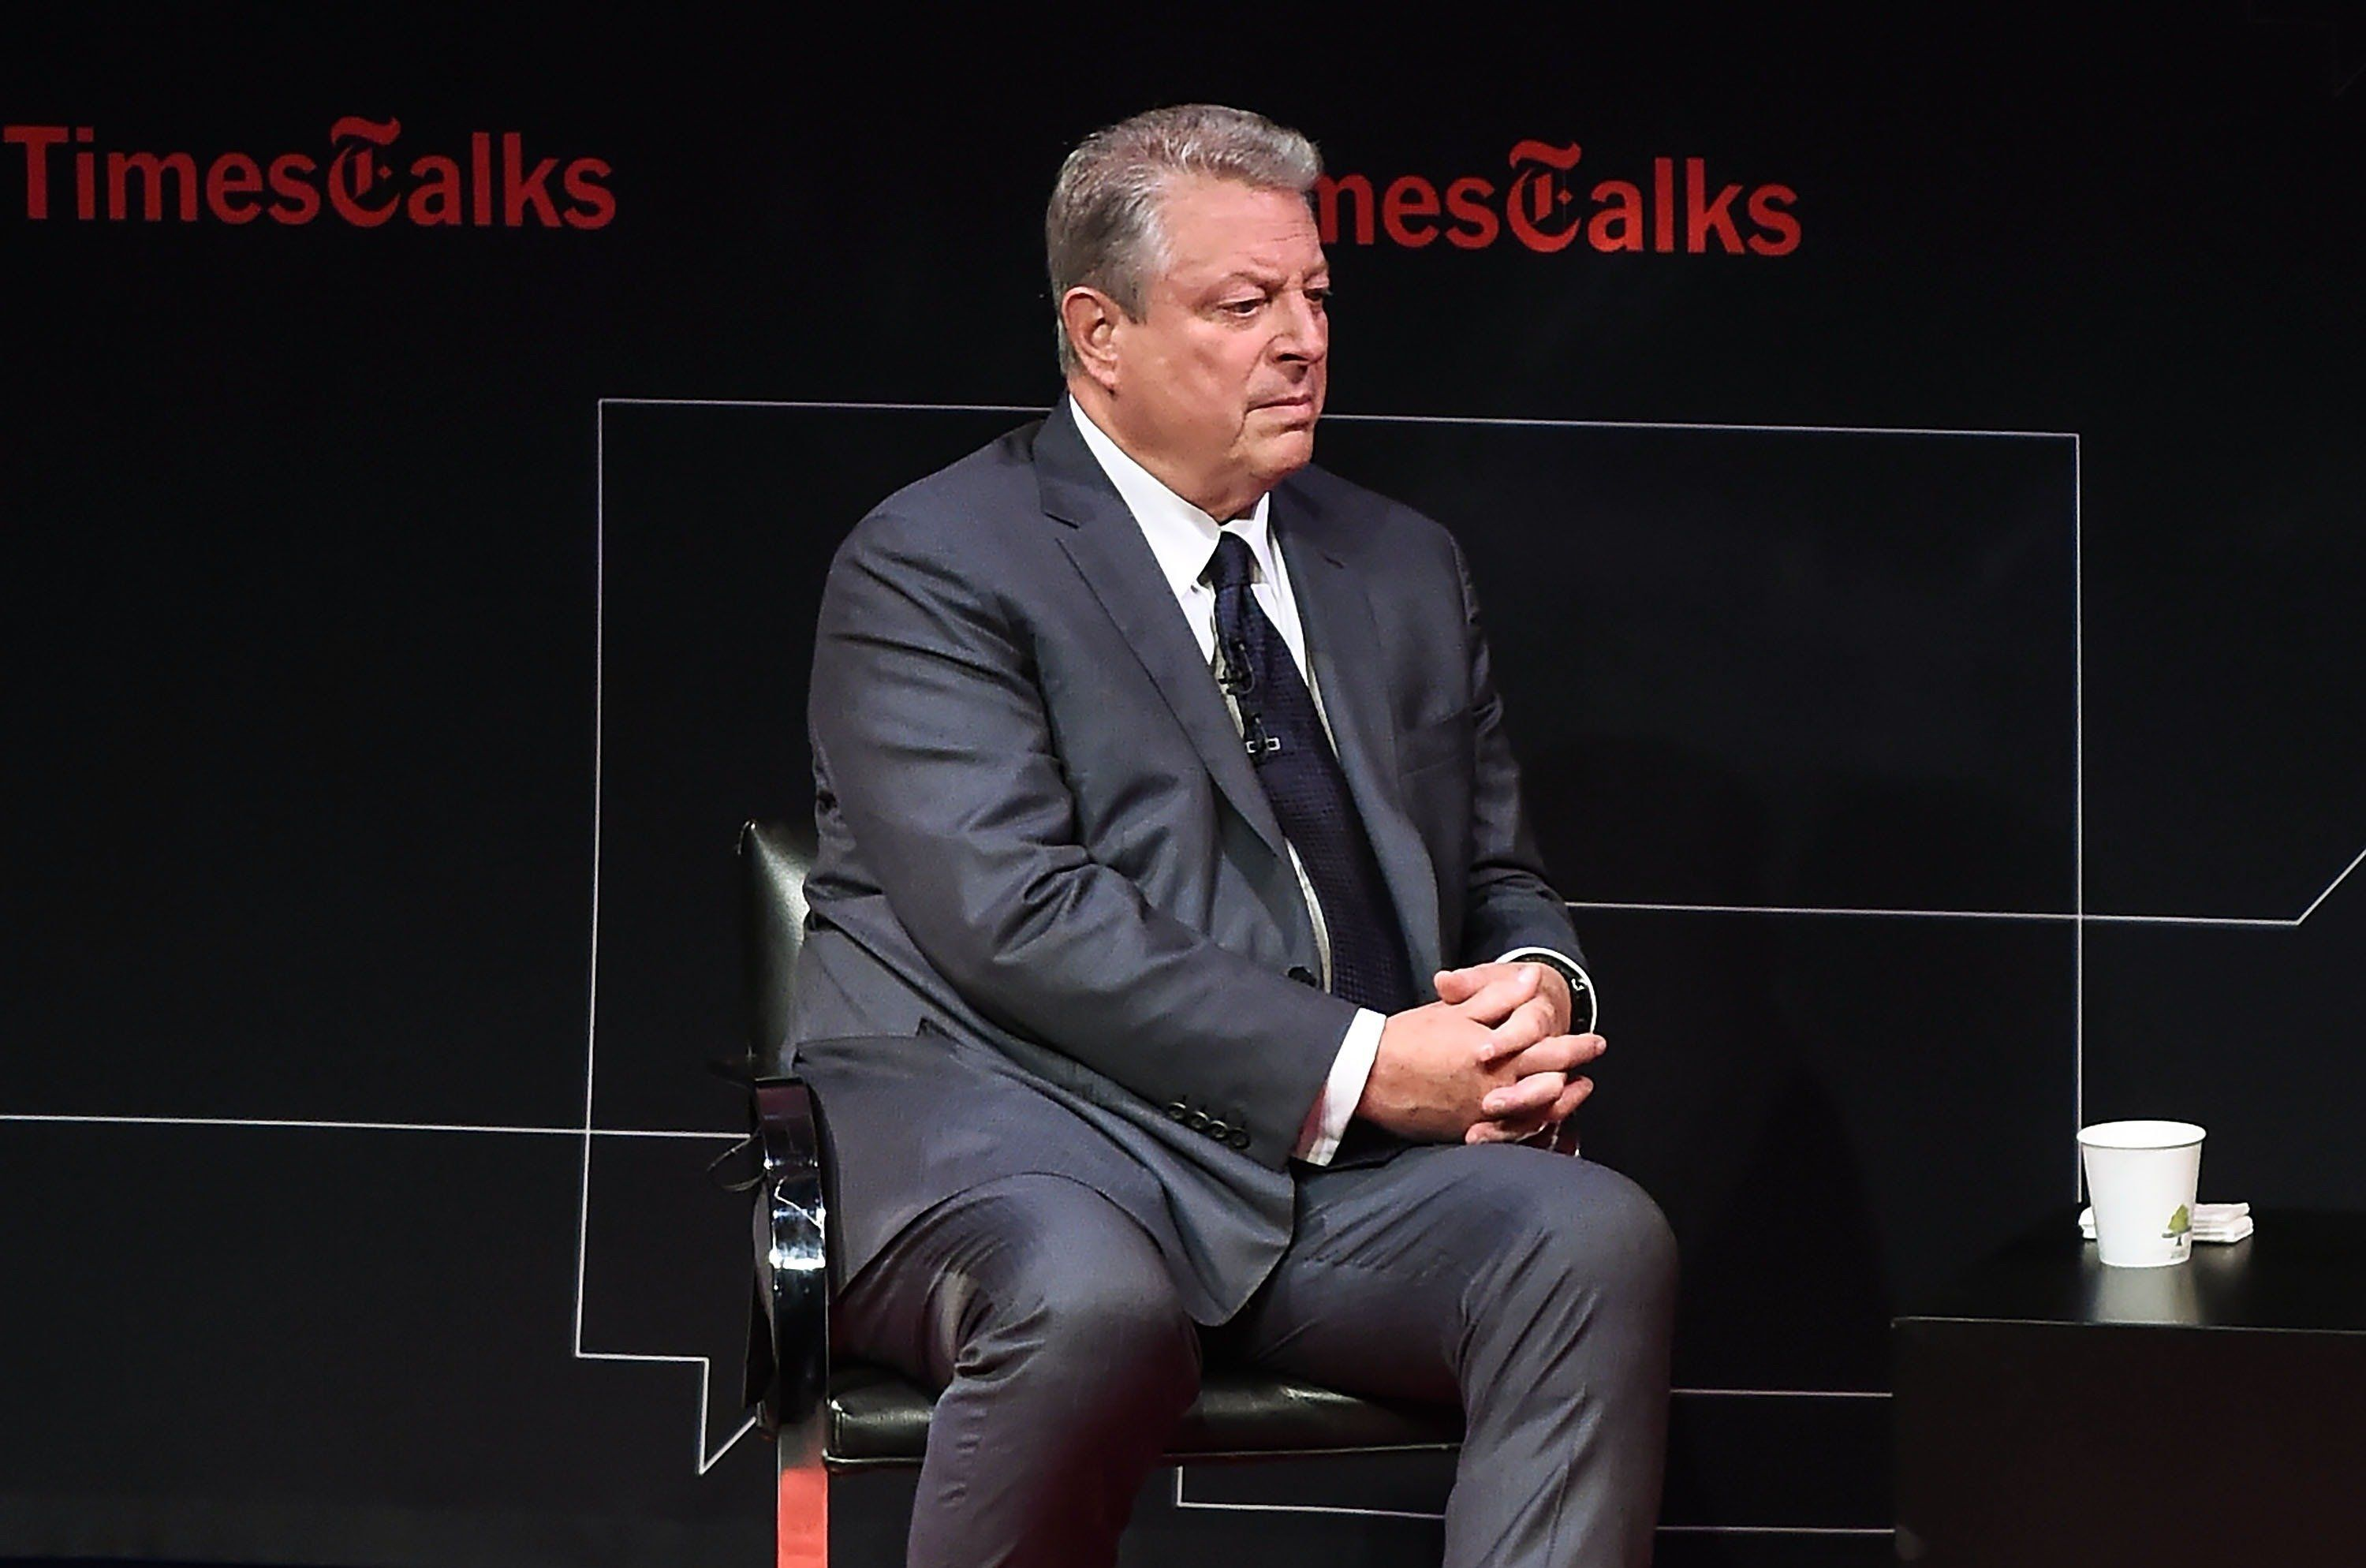 NEW YORK, NY - JULY 18:  Former Vice President Al Gore attends Times Talks at Tribeca Performing Arts Center on July 18, 2017 in New York City.  (Photo by Daniel Zuchnik/Getty Images)